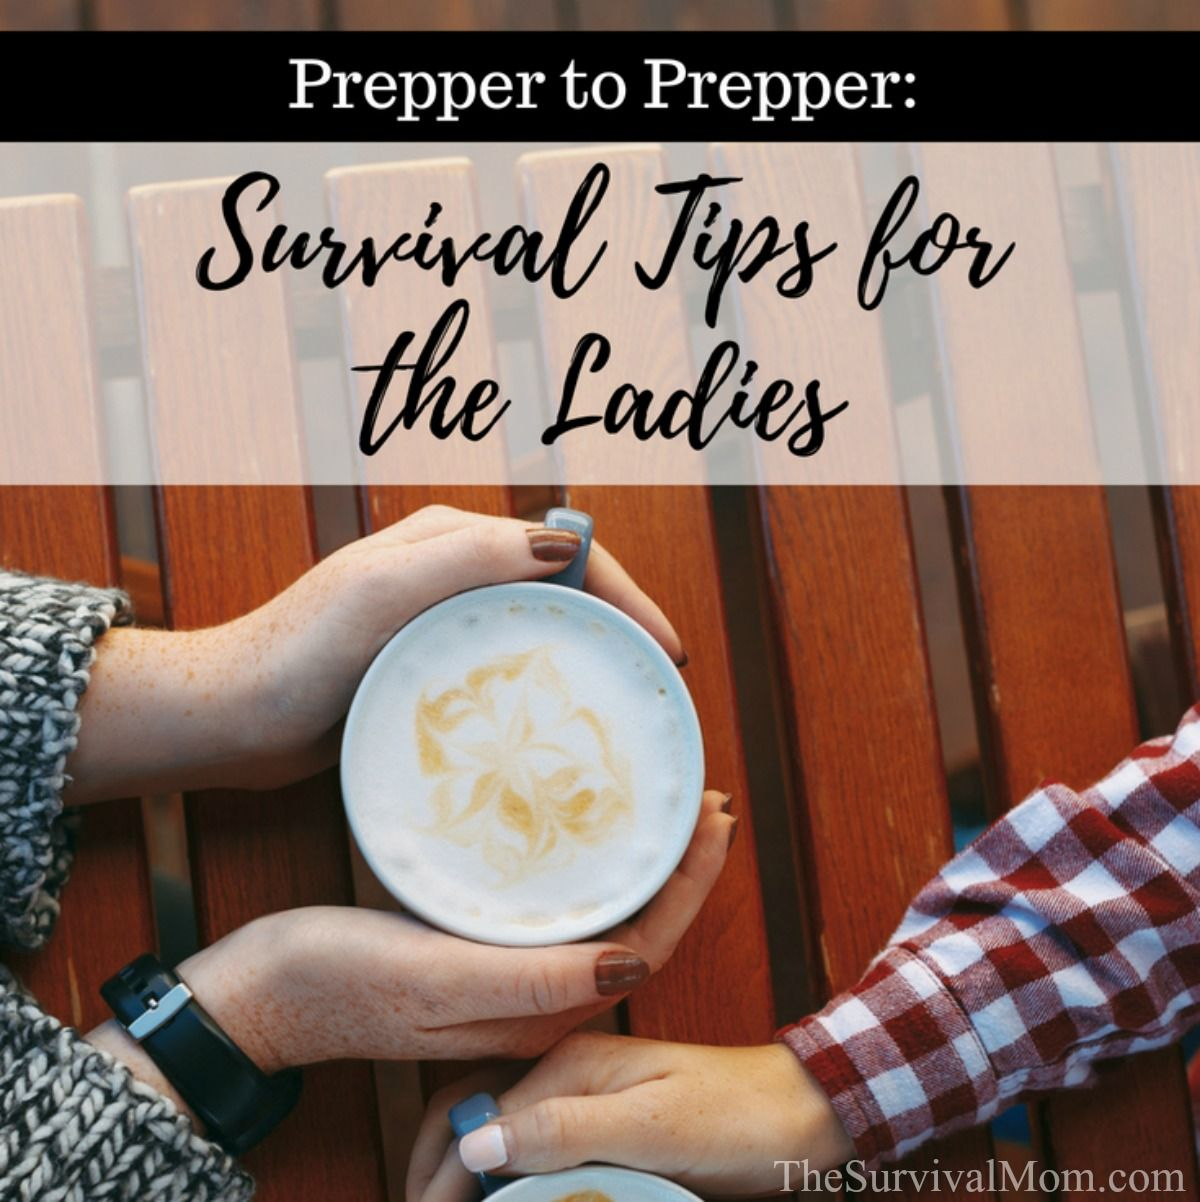 Prepper to Prepper Survival Tips for the Ladies via The Survival Mom